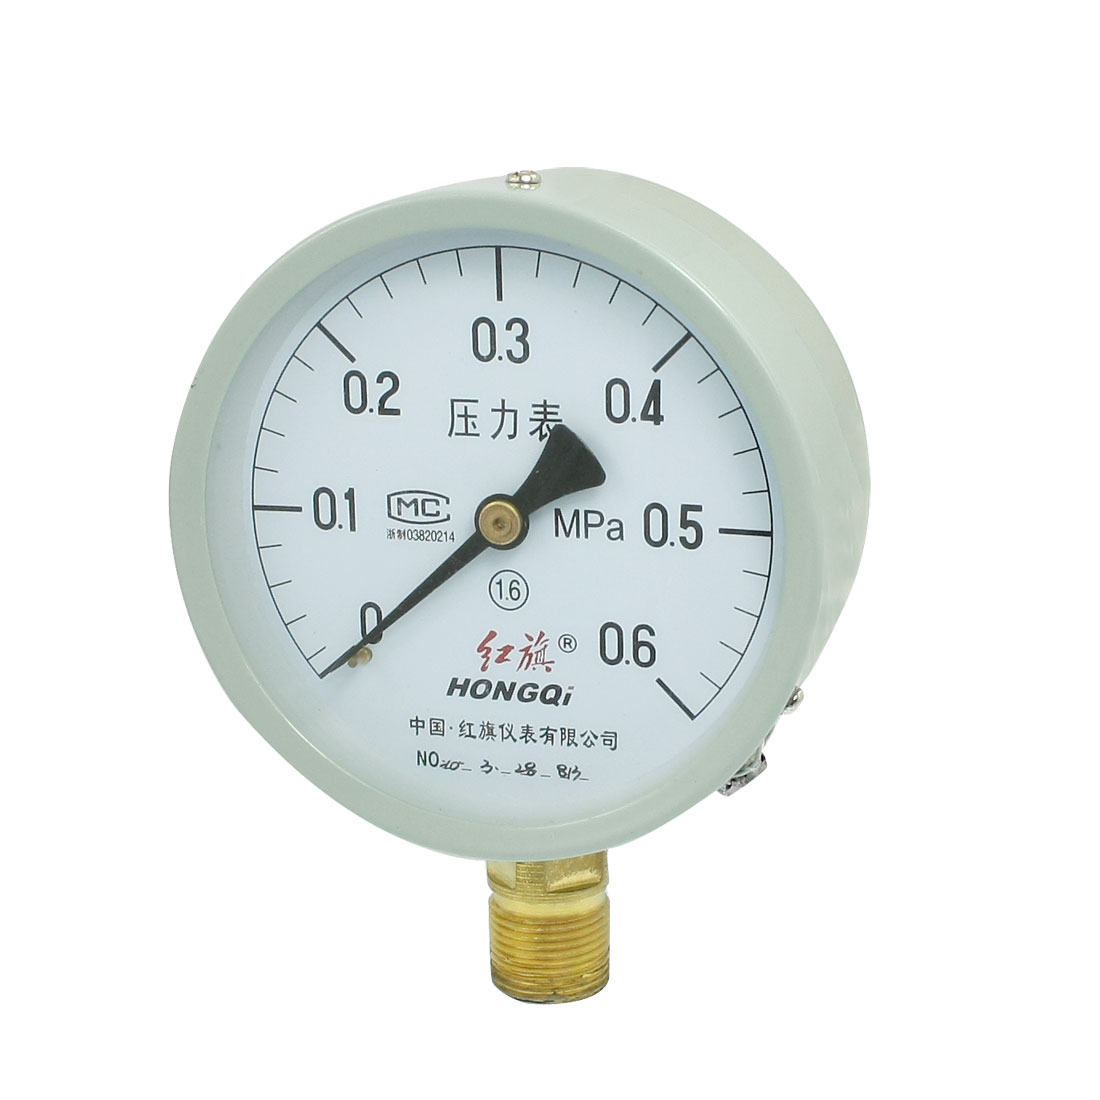 "1/2"" NPT Thread 0-0.6MPa Class 1.6 Round Face Water Air Pressure Gauge"